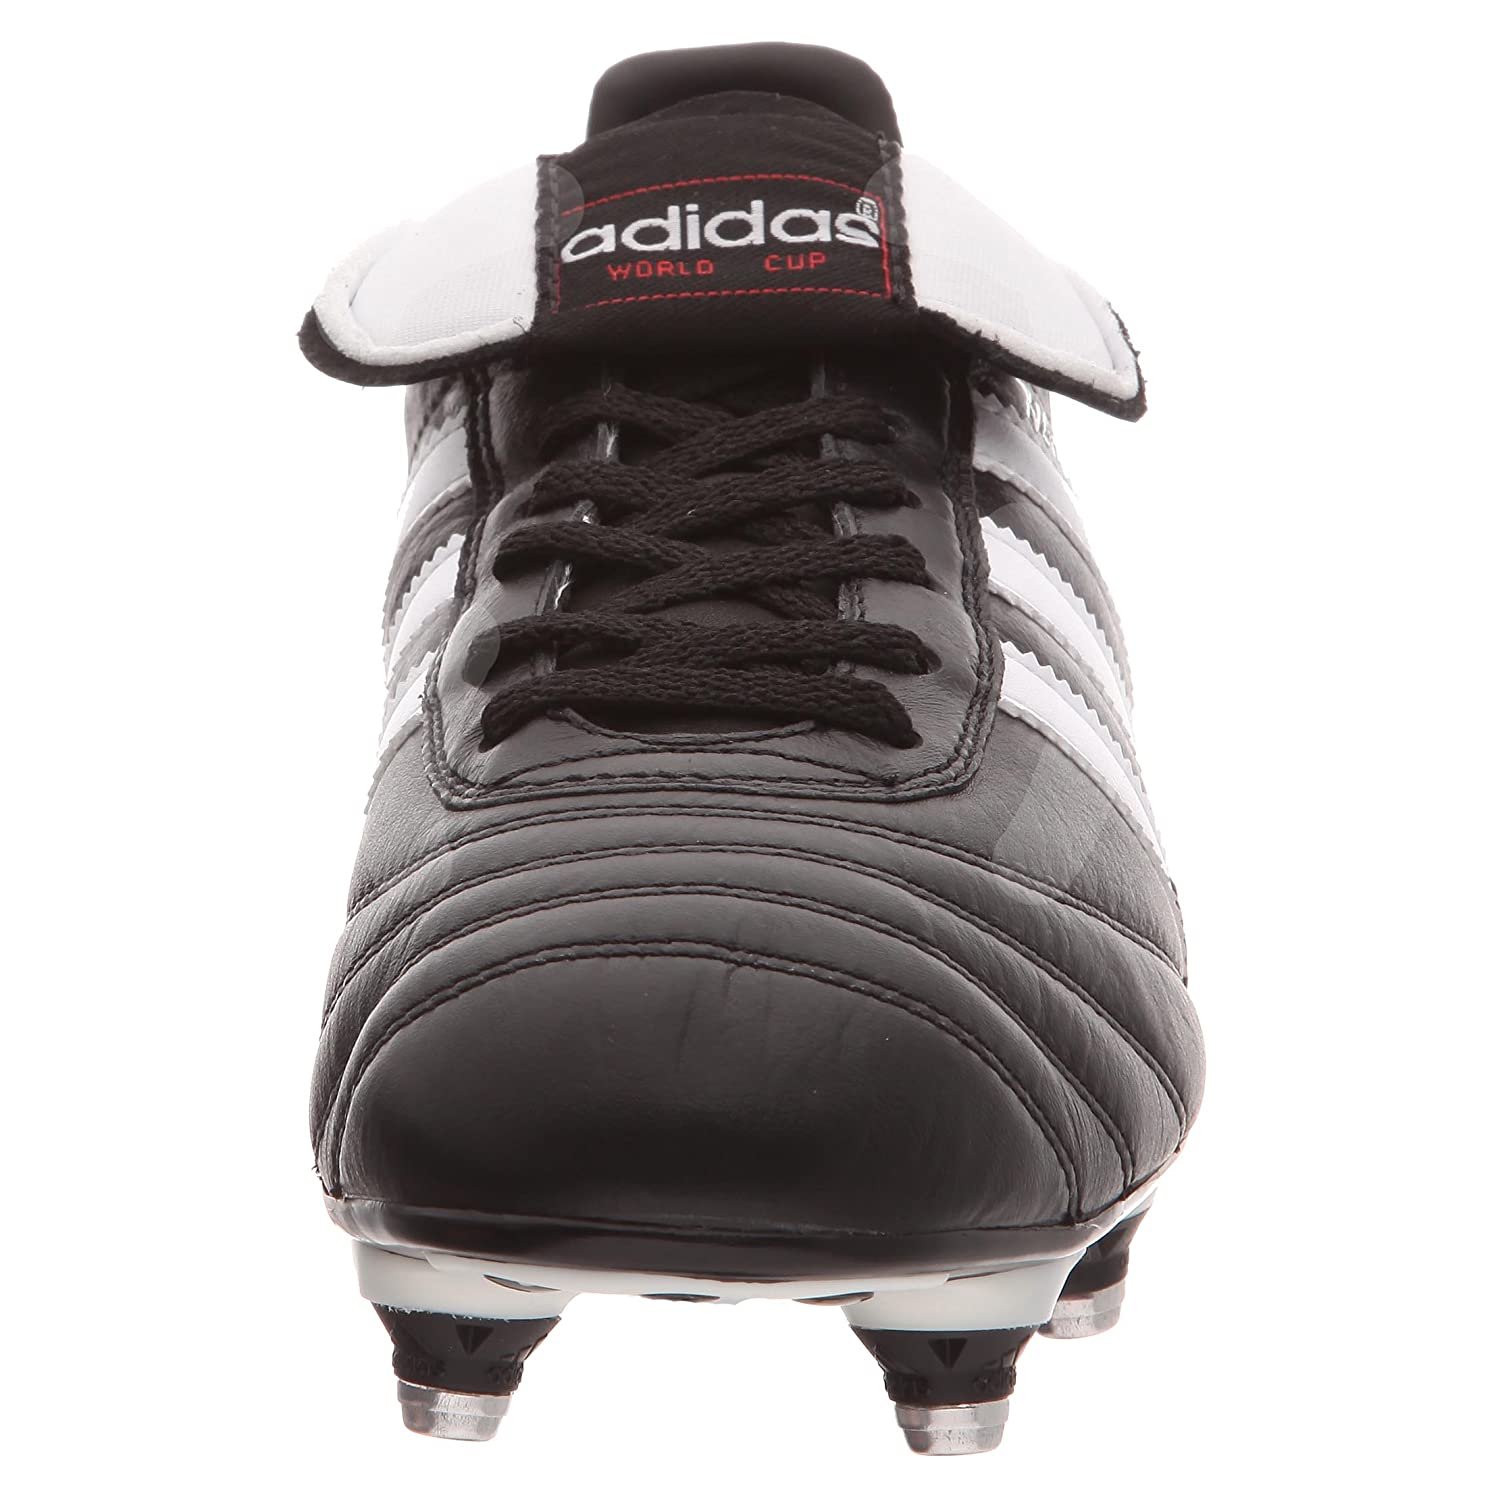 38f9e6269d5 adidas Men s World Cup Football Boots  Amazon.co.uk  Shoes   Bags